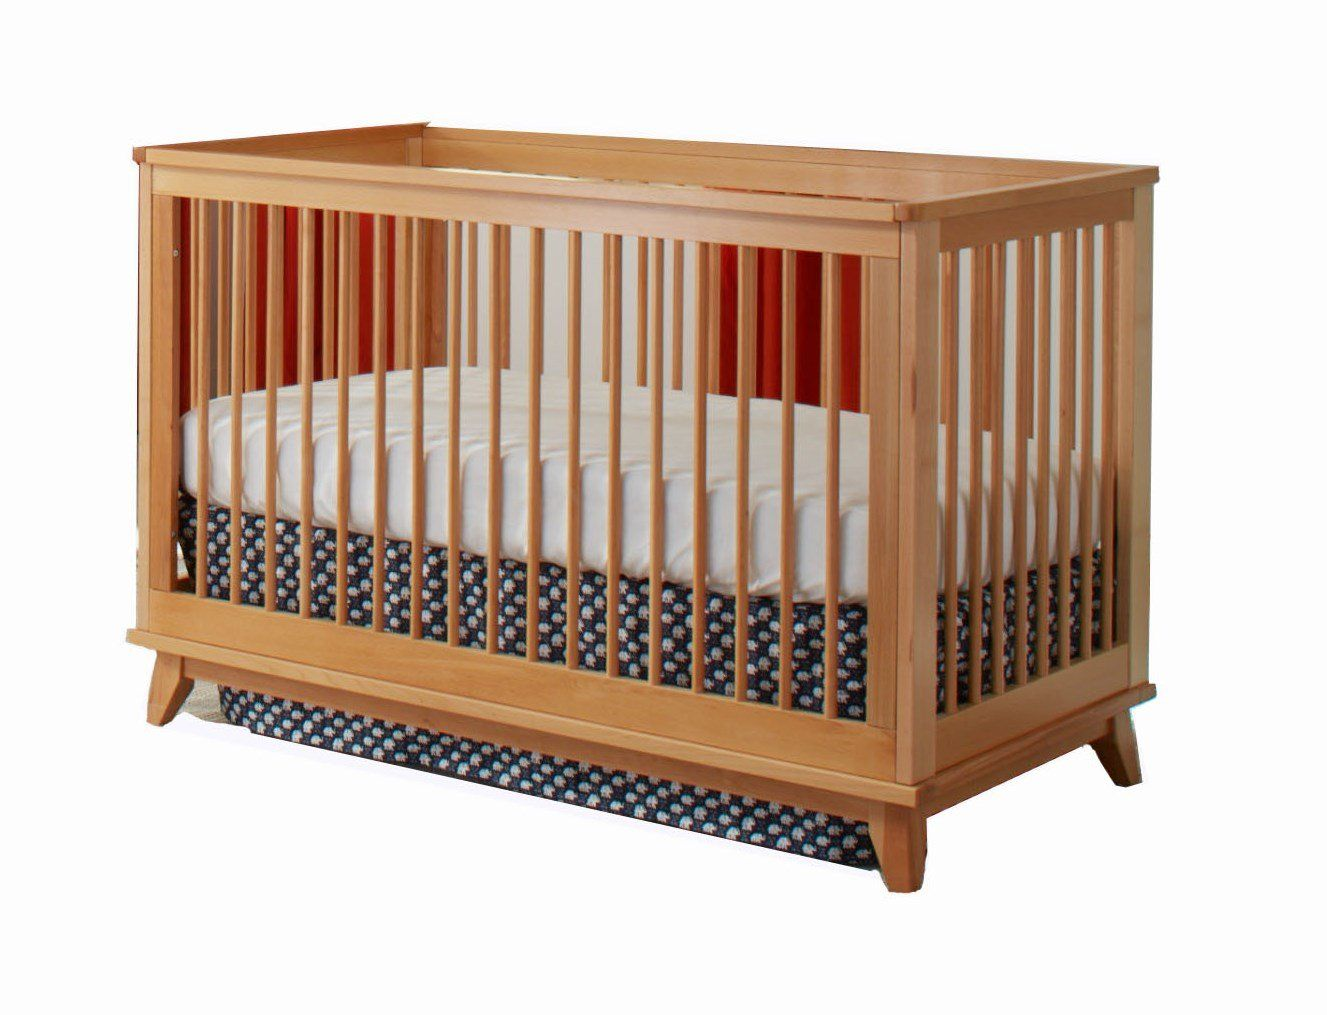 meadowdale user there westwood manuals design hardware cribs always pages manual crib